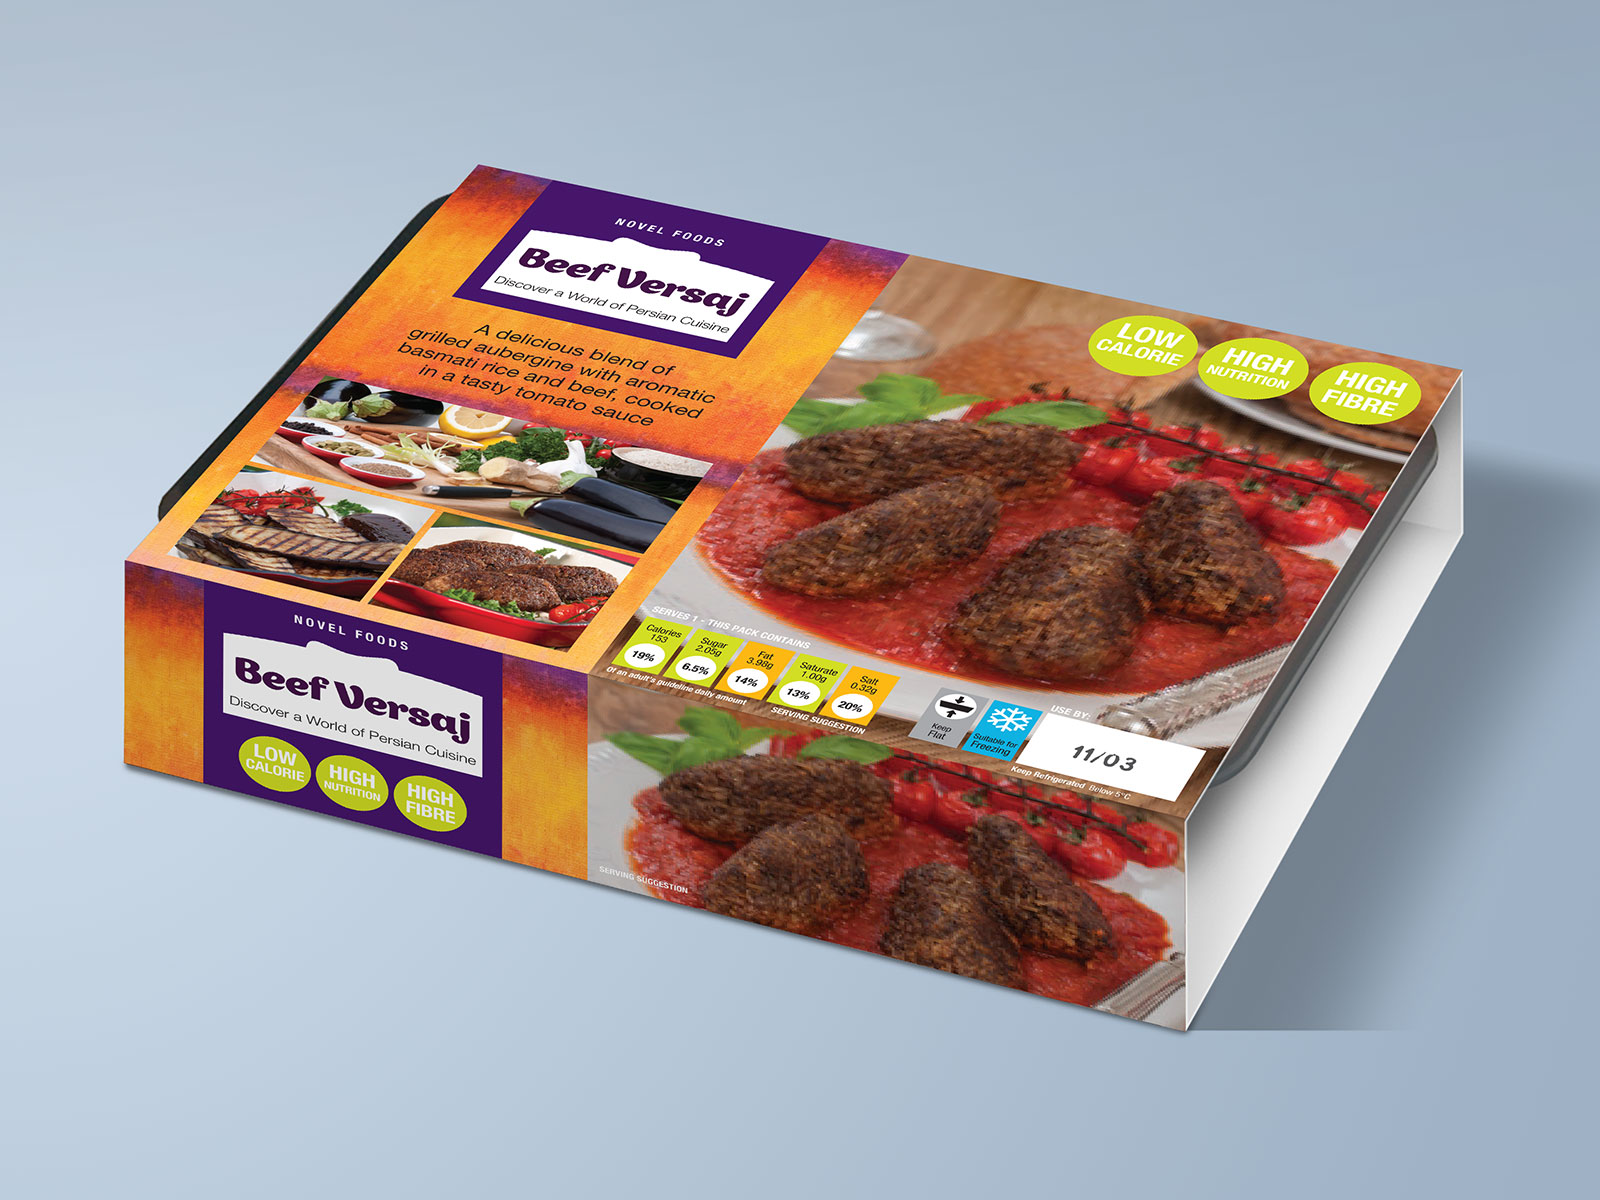 Novel Foods Beef Versaj Packaging Design